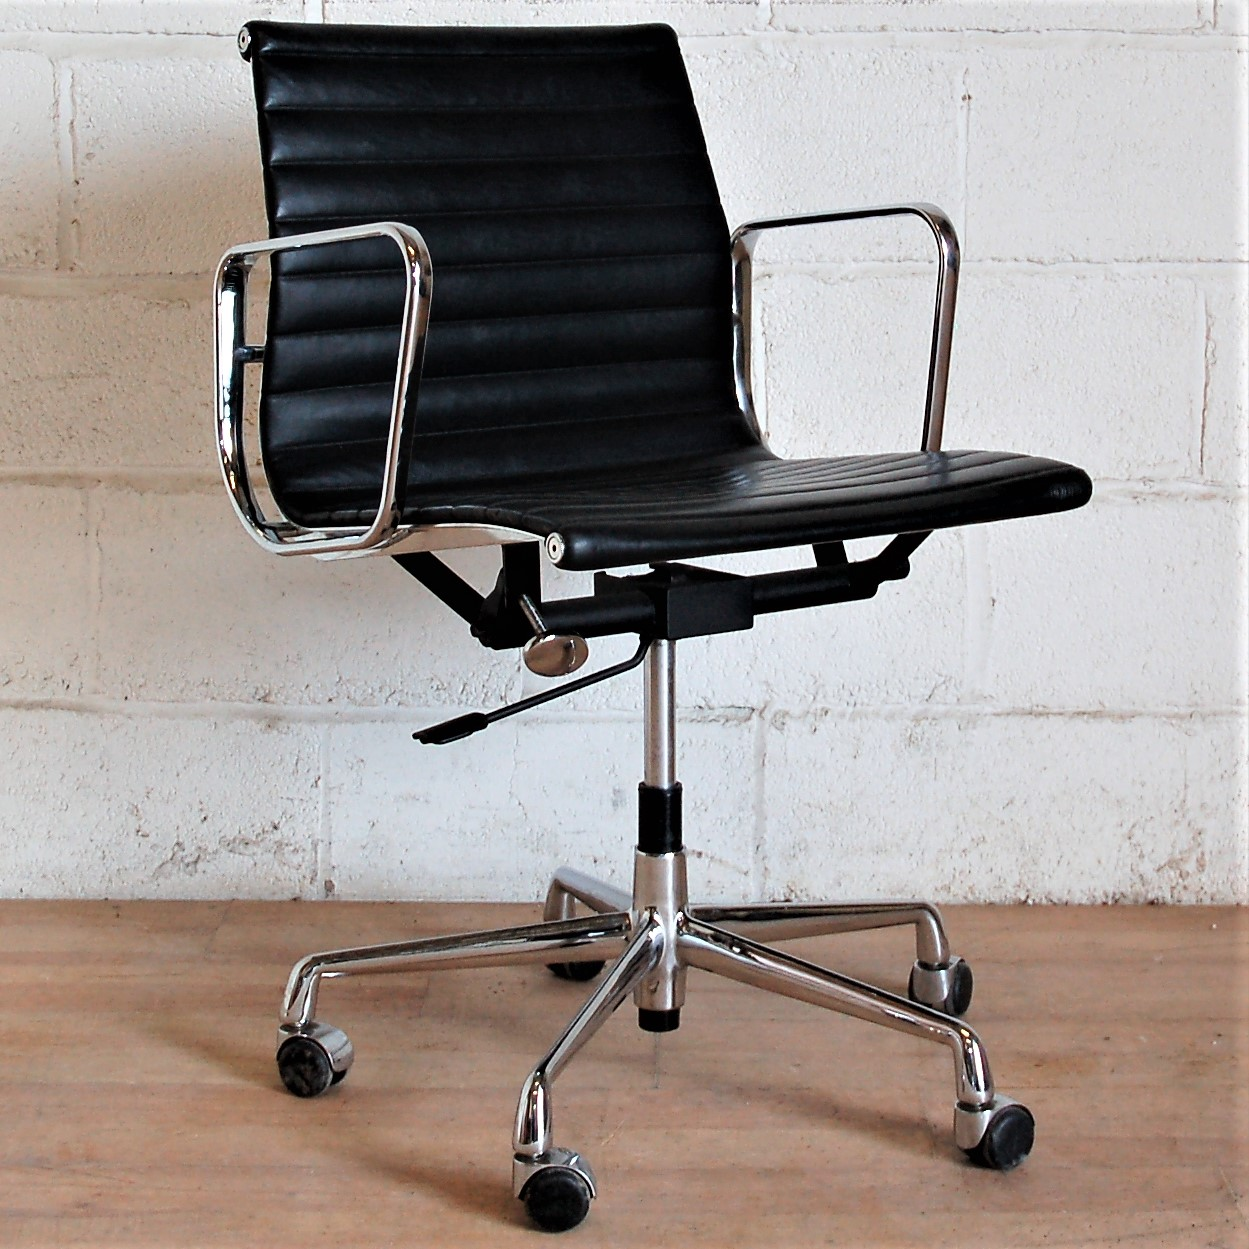 Charles Eames Charles Eames Aluminium Group Chair Black Leather 2085